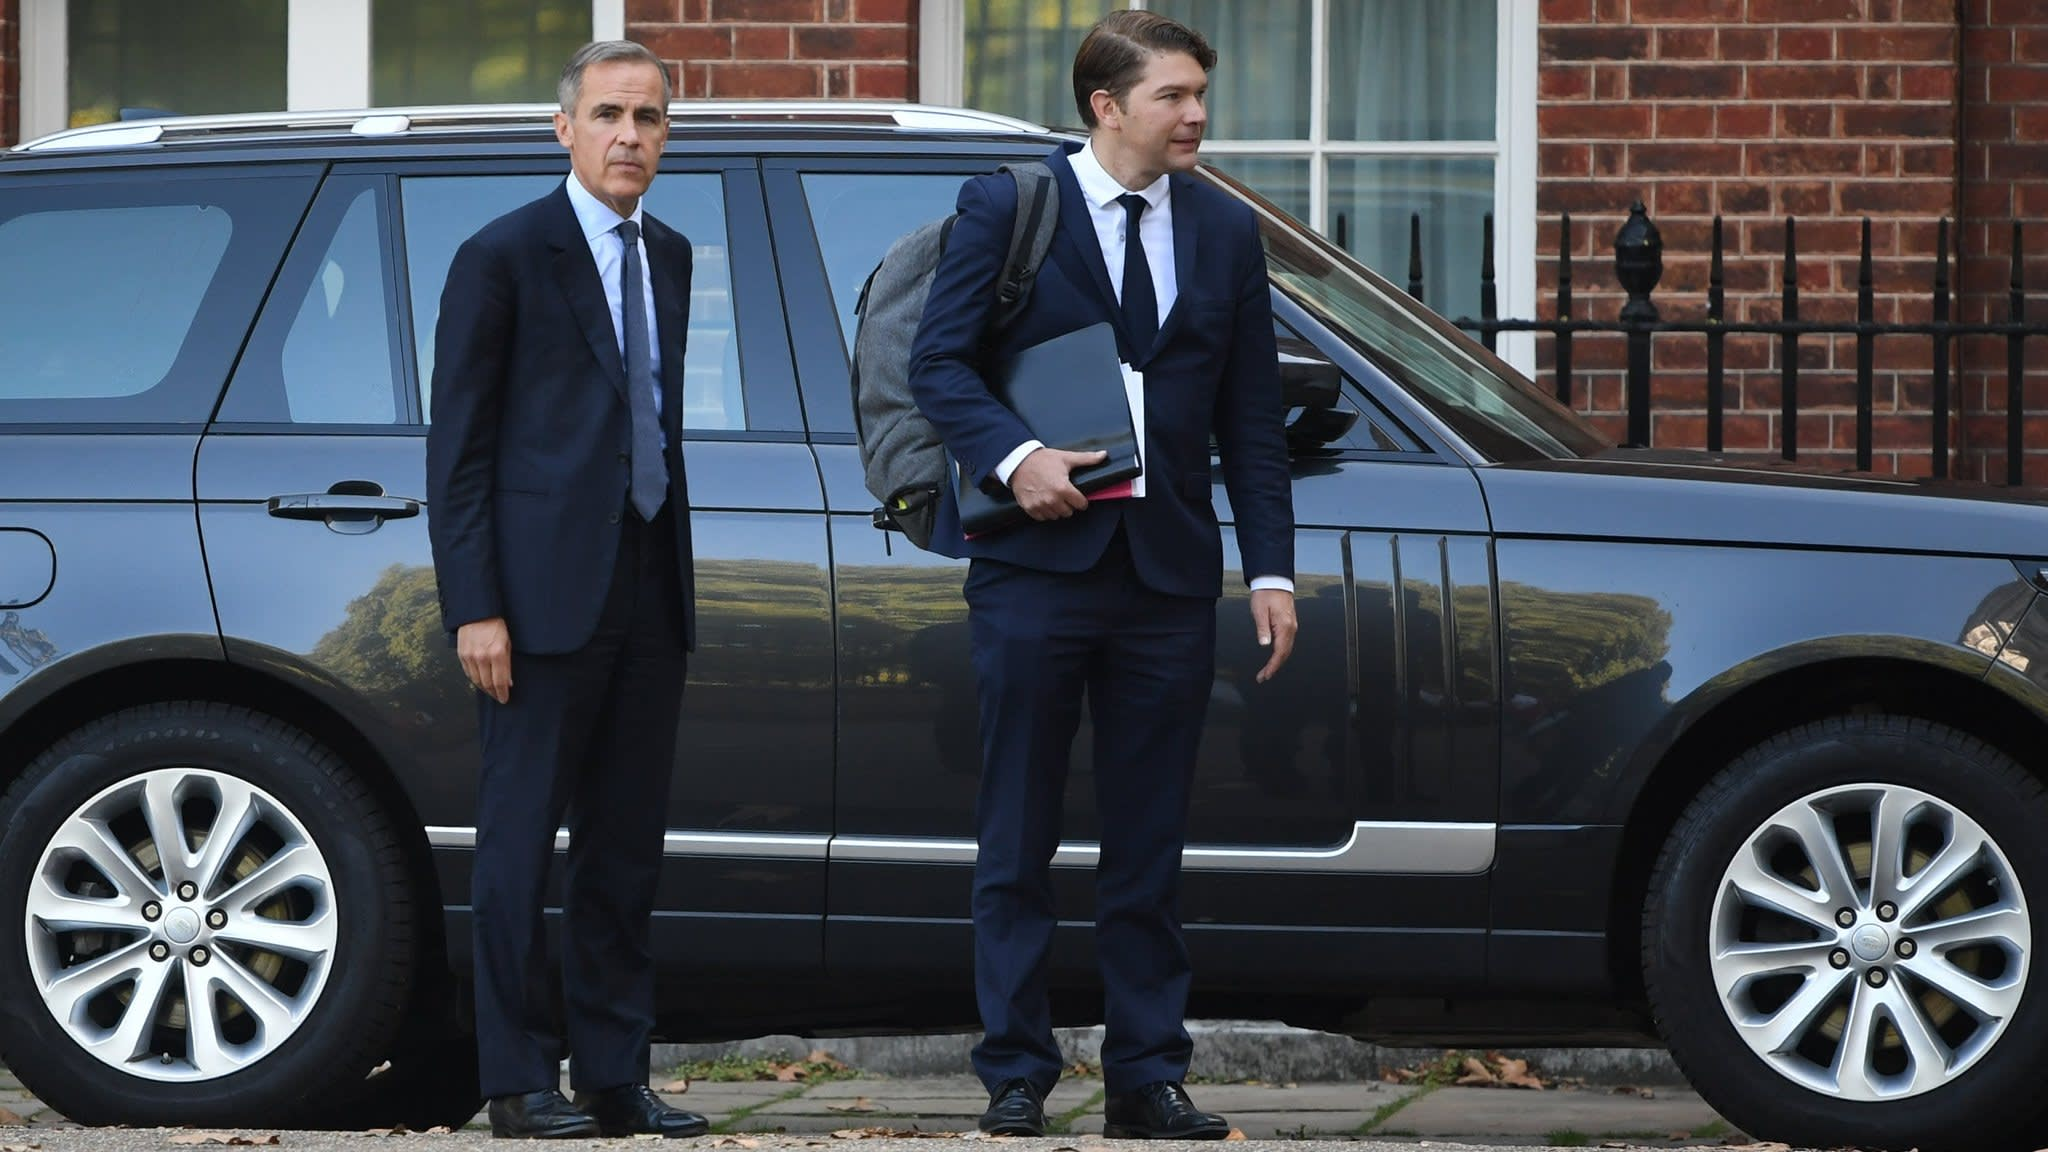 Carney predicts £16bn bounce to UK economy from Chequers Brexit deal